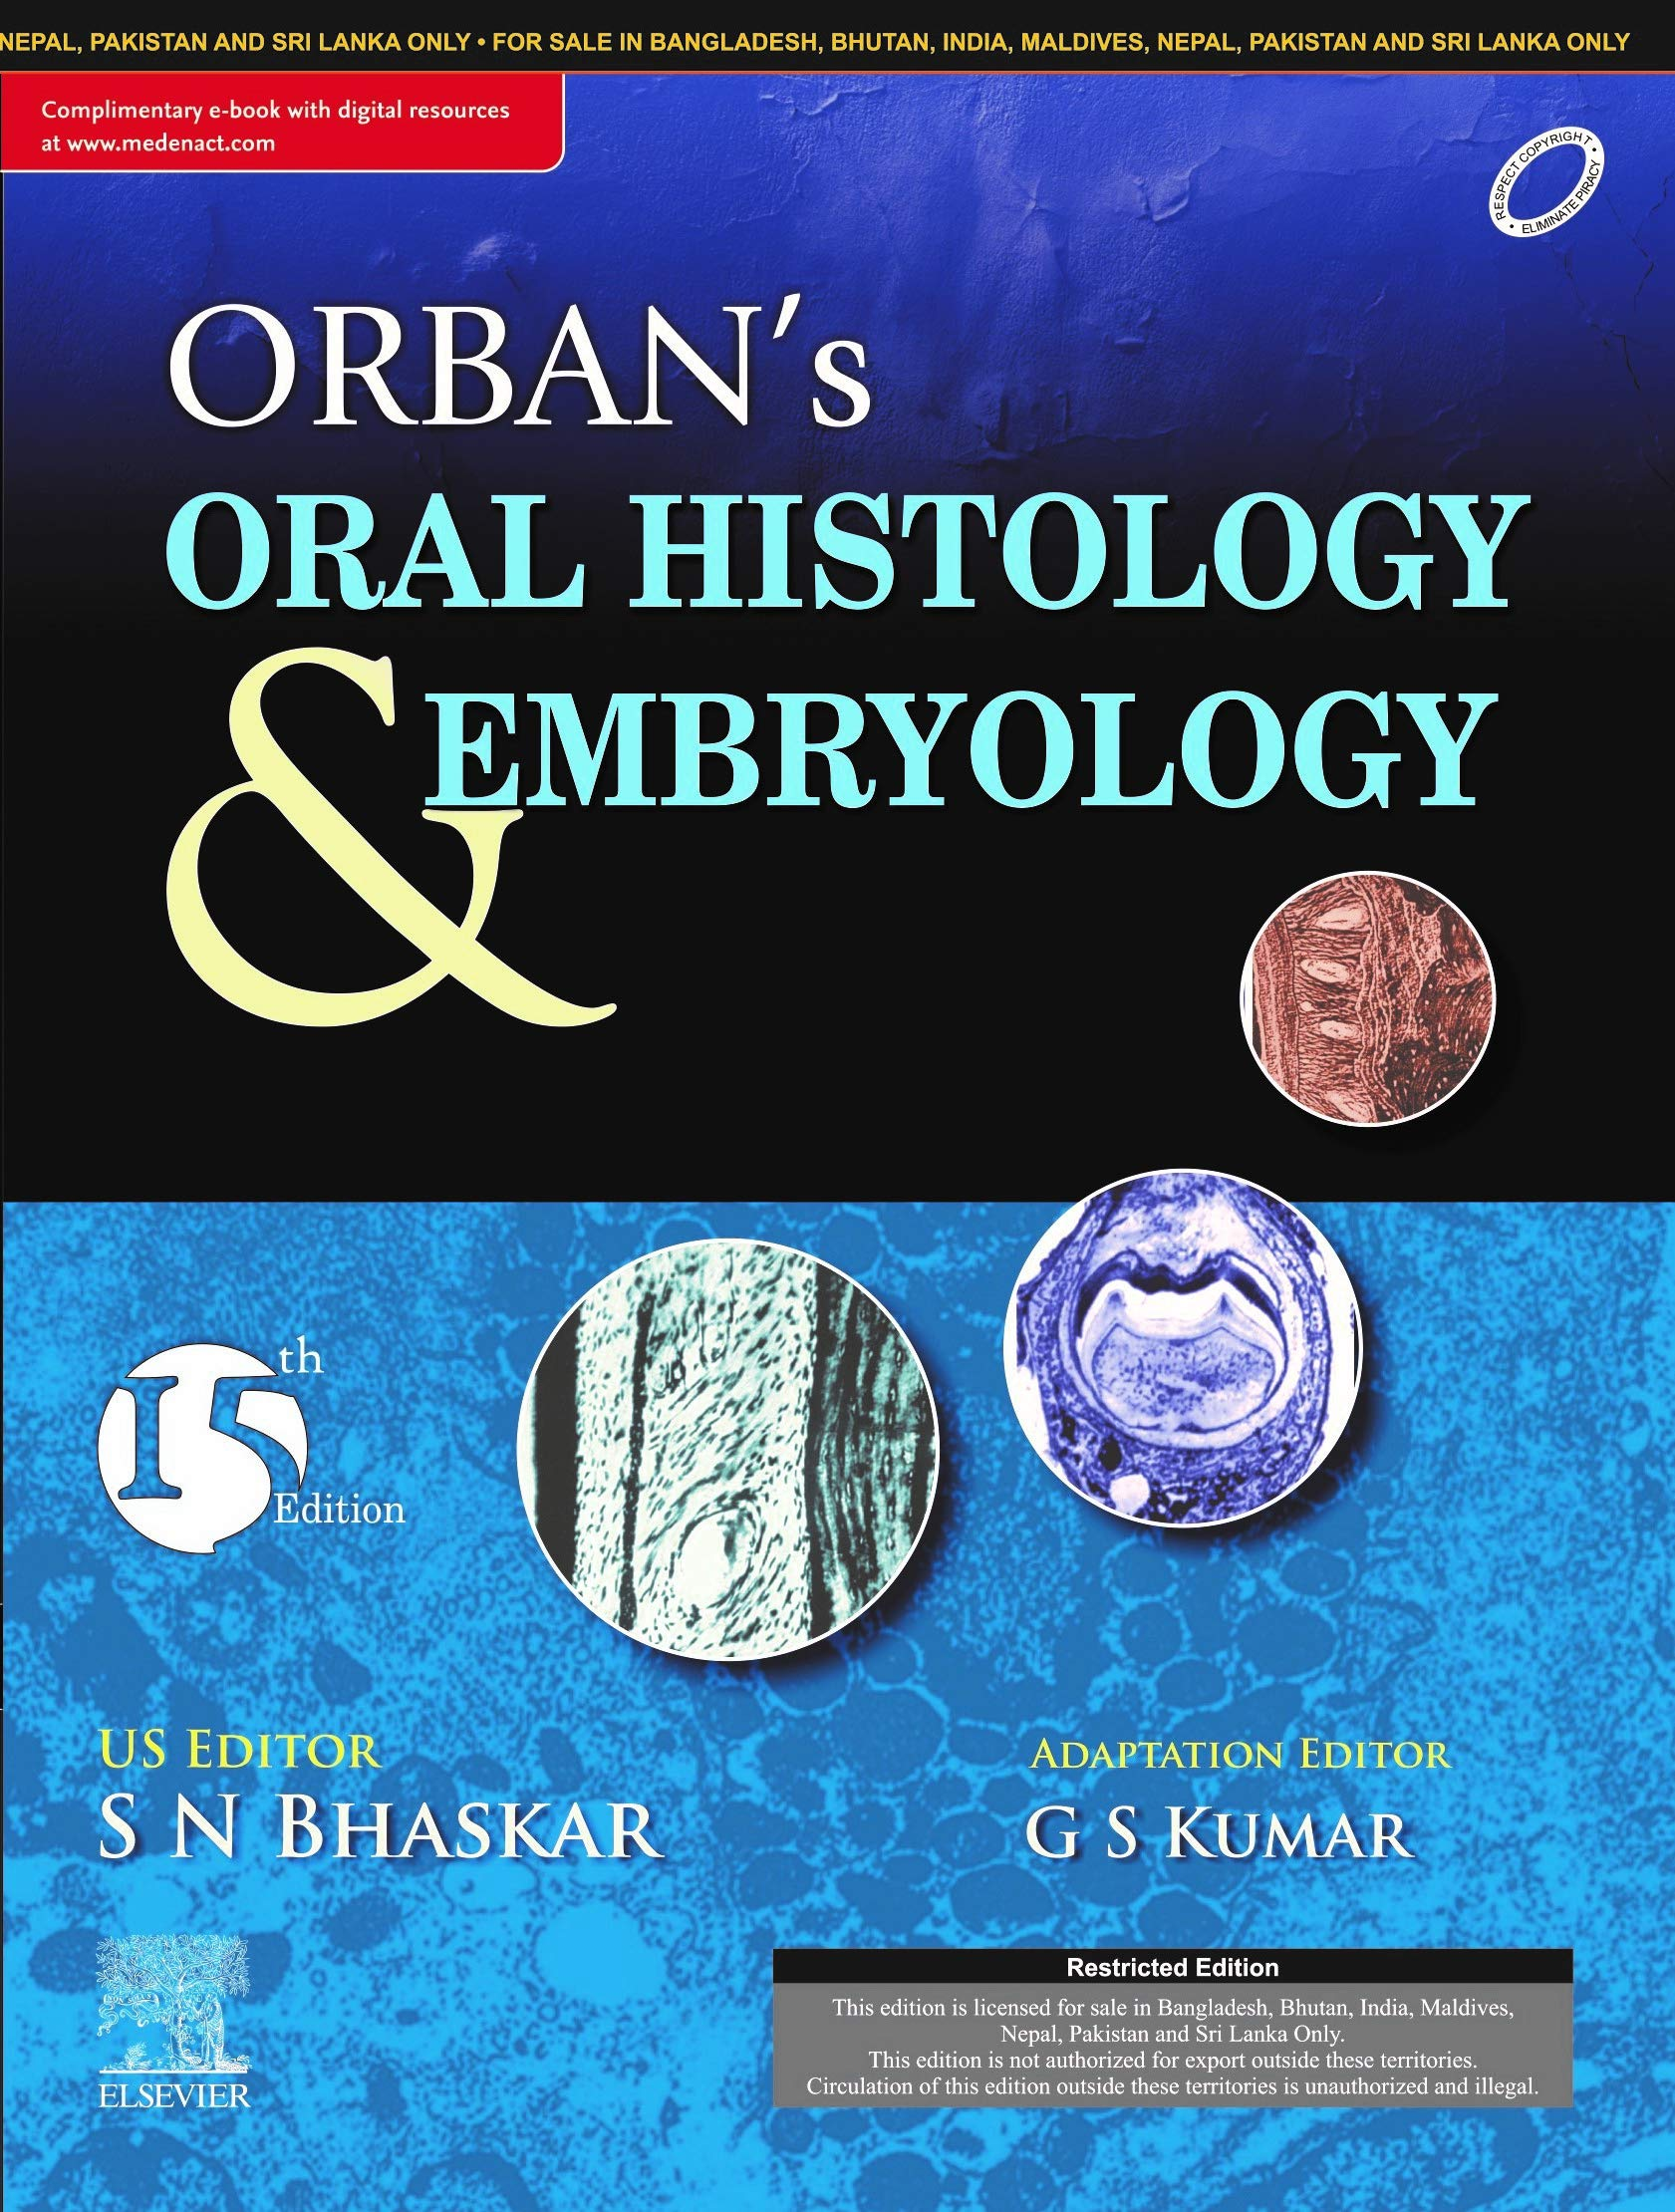 Orban's Oral Histology and Embryology, 15th Edition with Atlas of Oral Histology, 2nd Edition